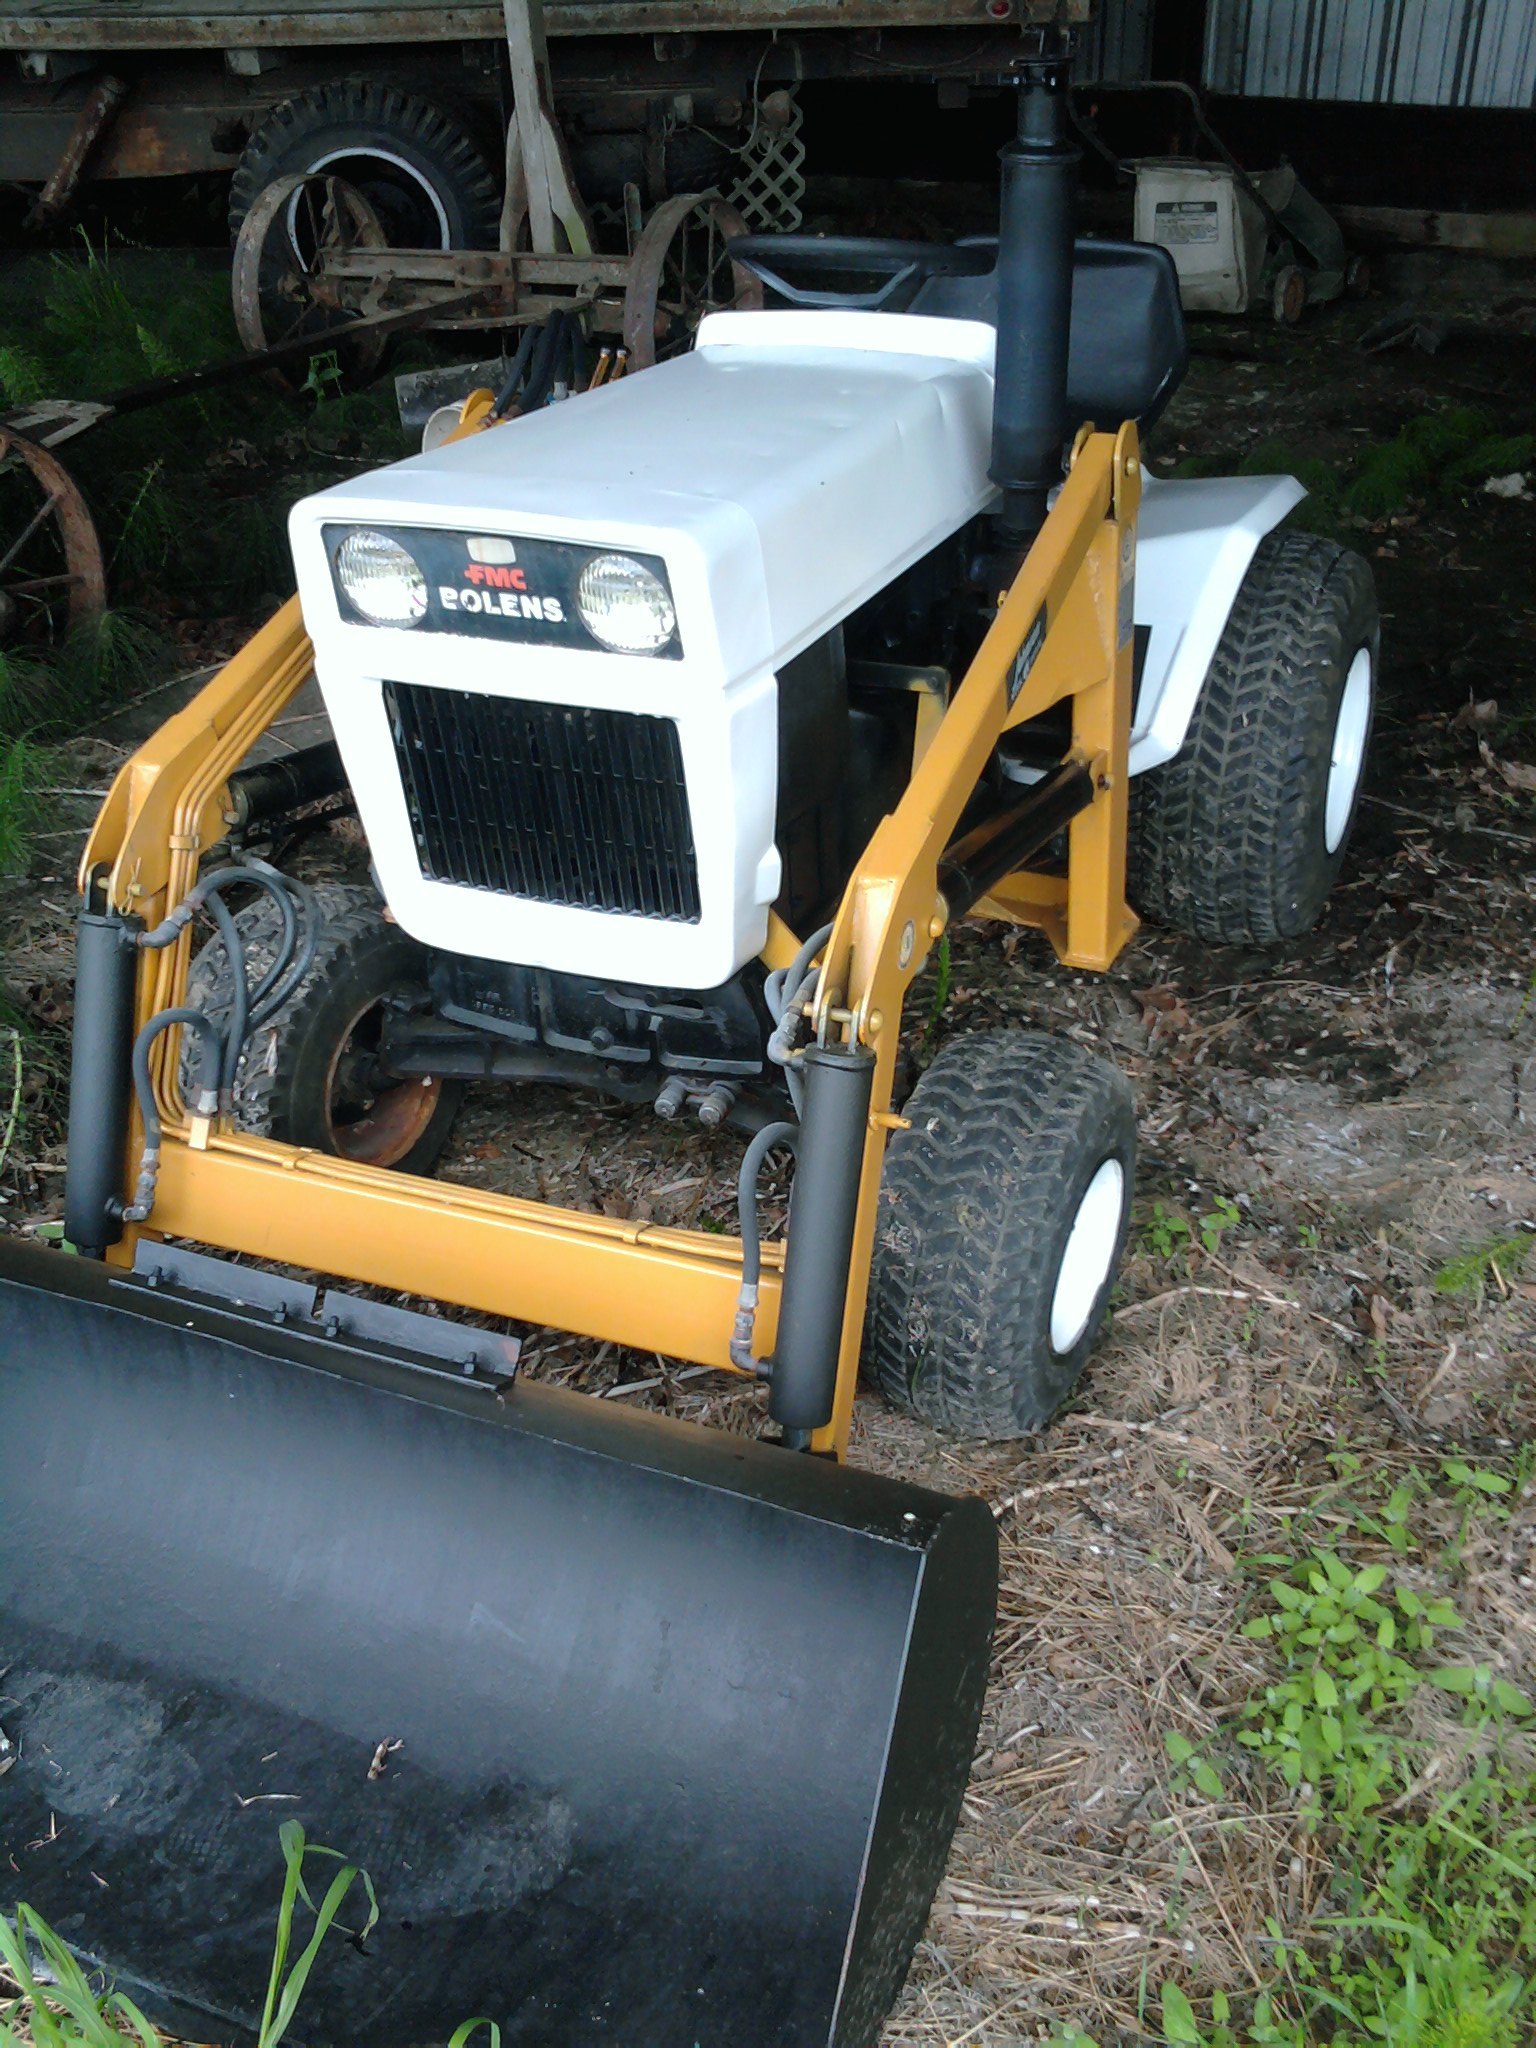 Bolens Ht 20 Lawn Tractor Tractors 1256 Husky Wiring Diagram Related Keywords Suggestions Long Tail